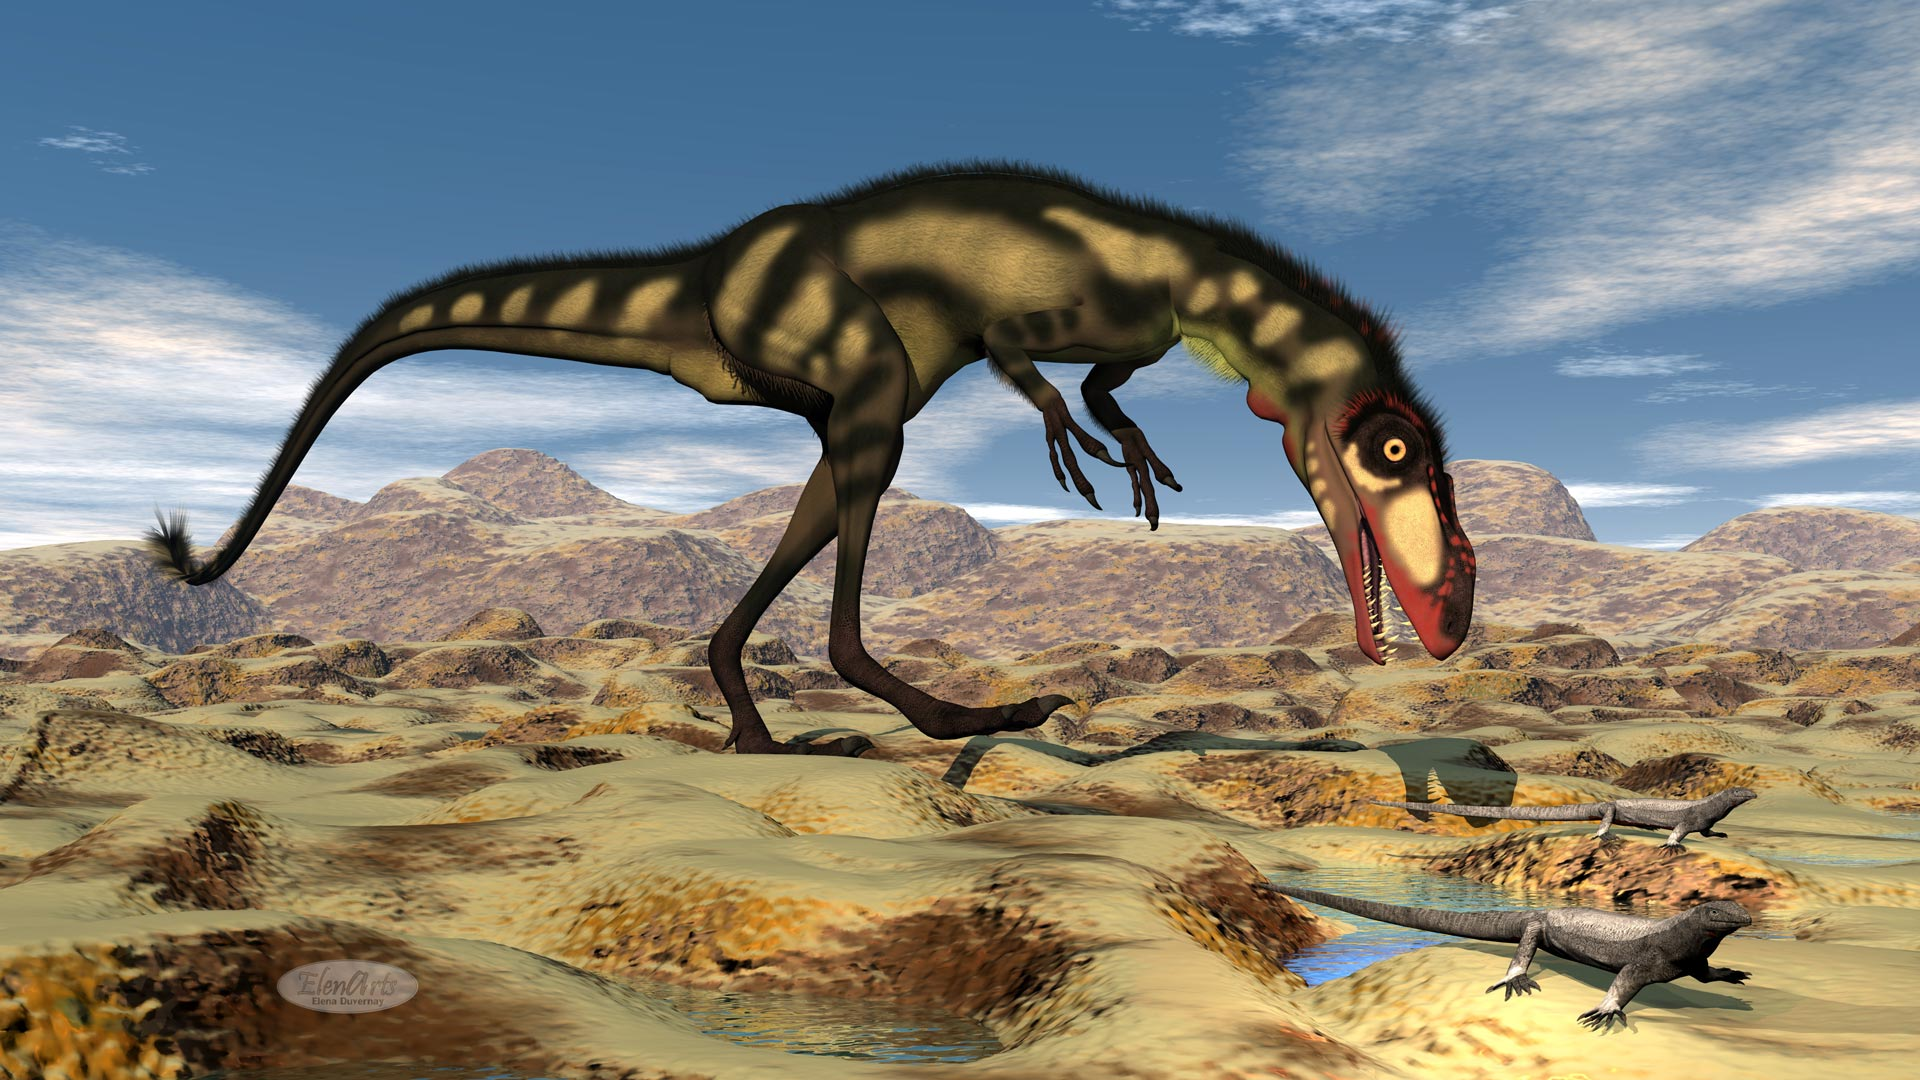 Dilong dinosaur in the desert hunting small lizards - 3D render